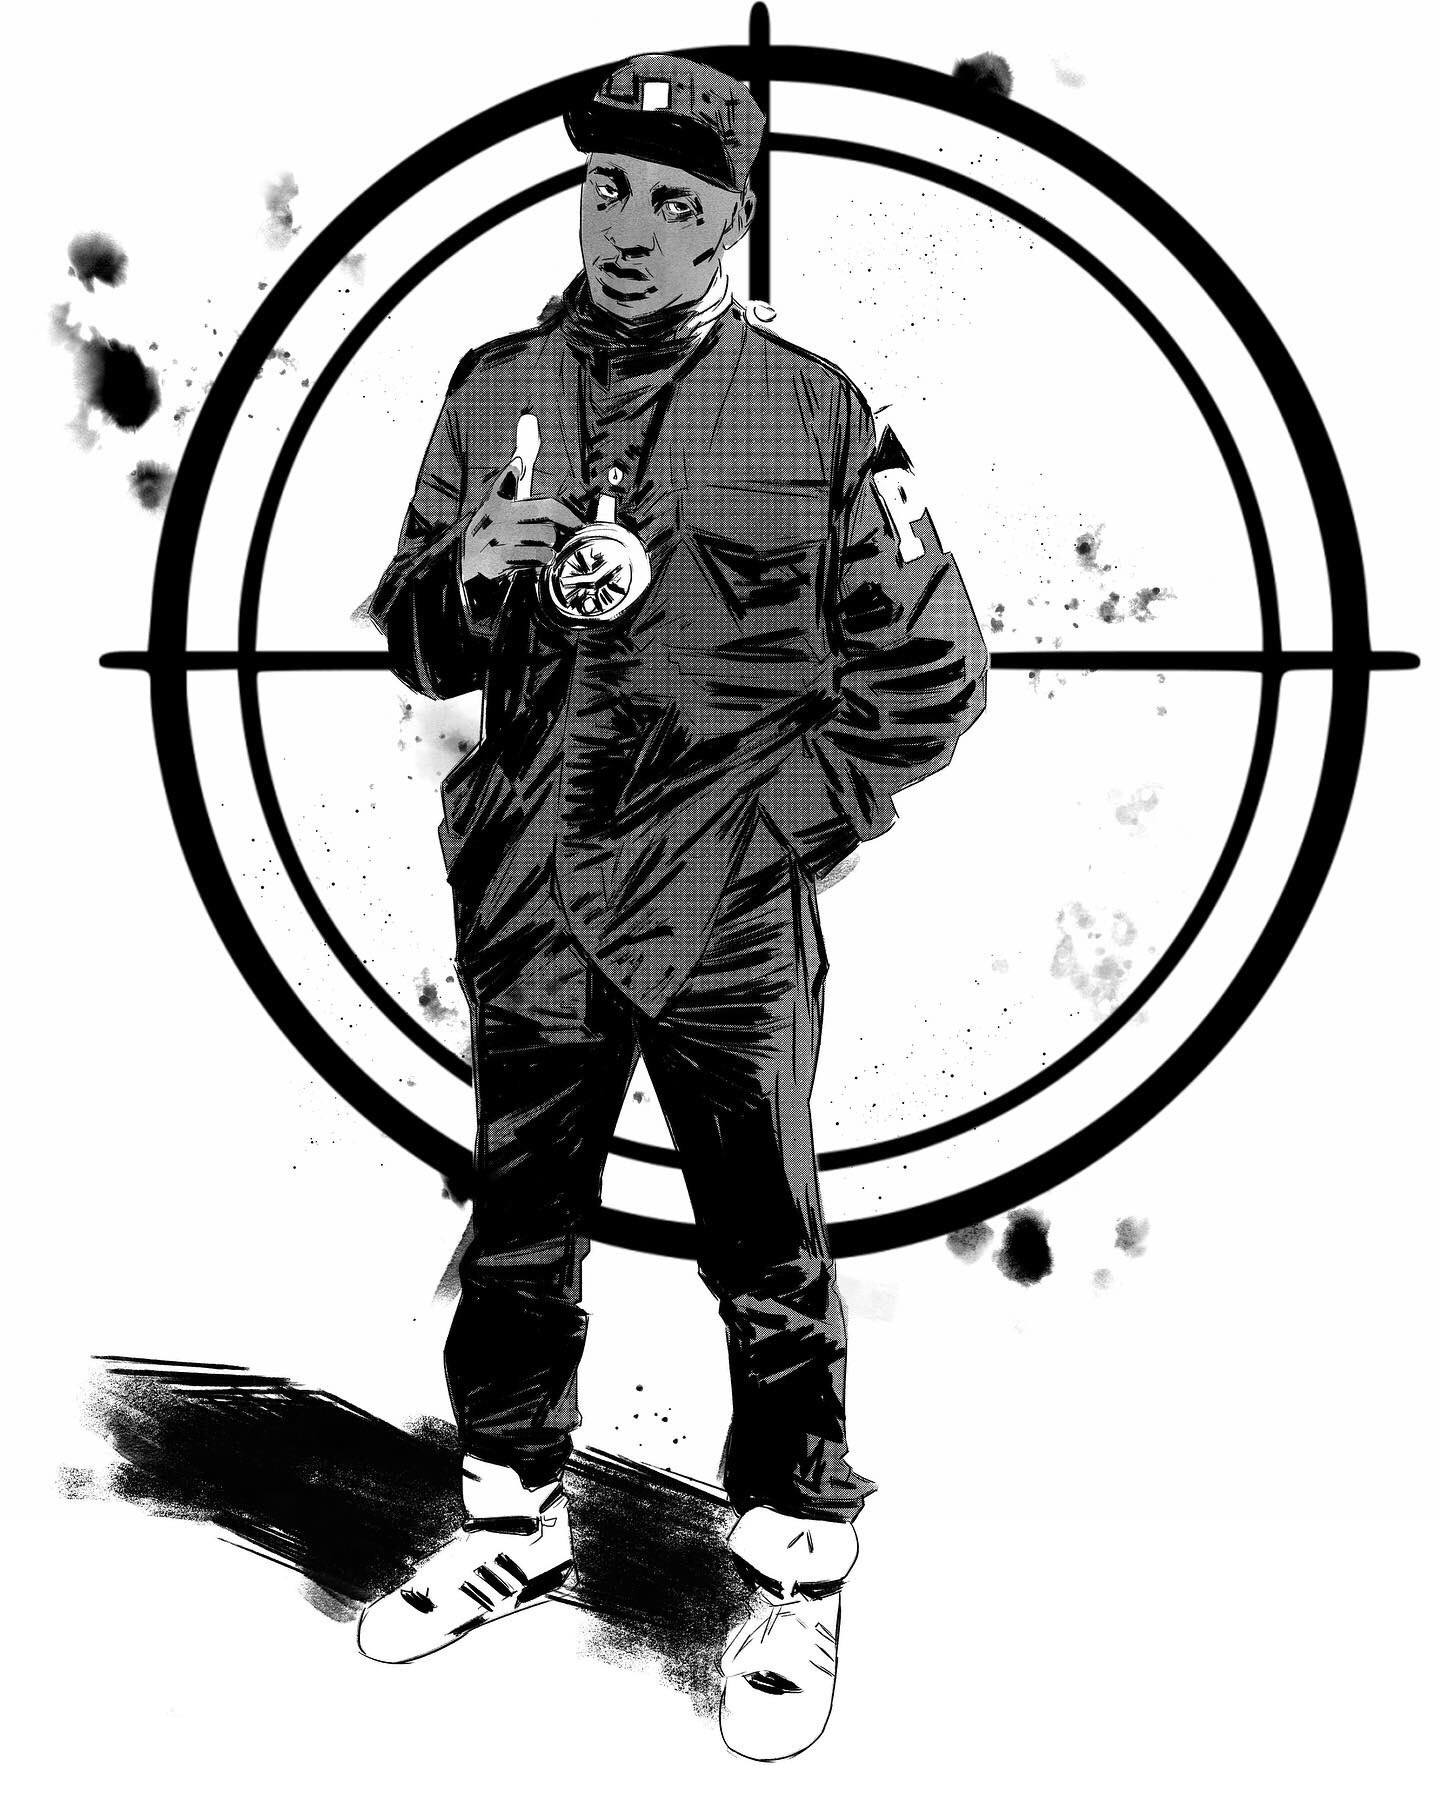 Yesterday s drawing - happy (now belated) birthday to Chuck D of Public Enemy